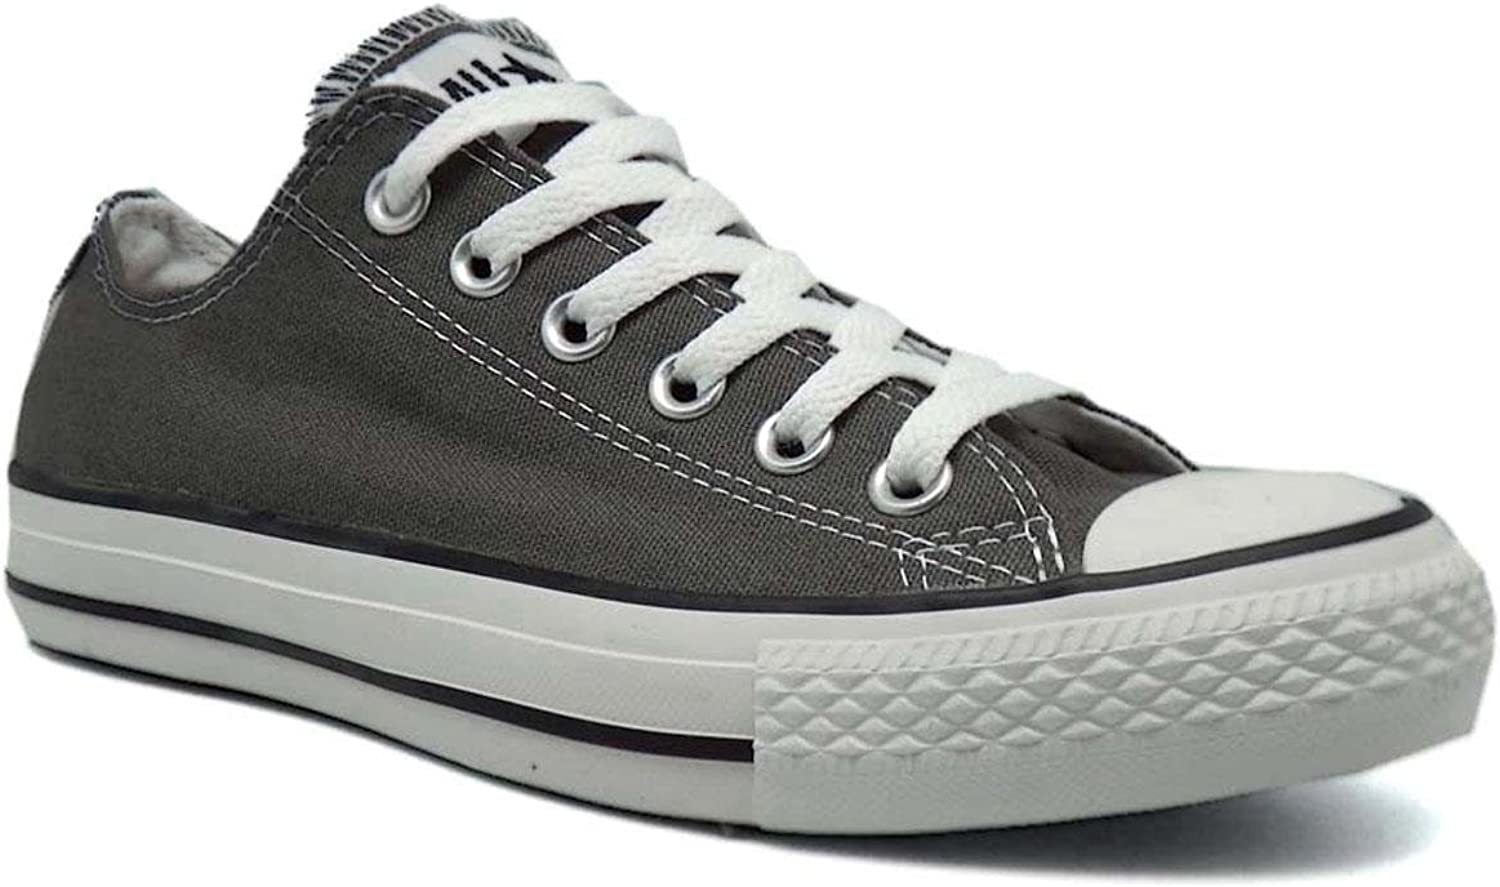 Converse Chuck Taylor All Star Core Optical White M7652 (7 (Men)   9 (Women) US, Charcoal)